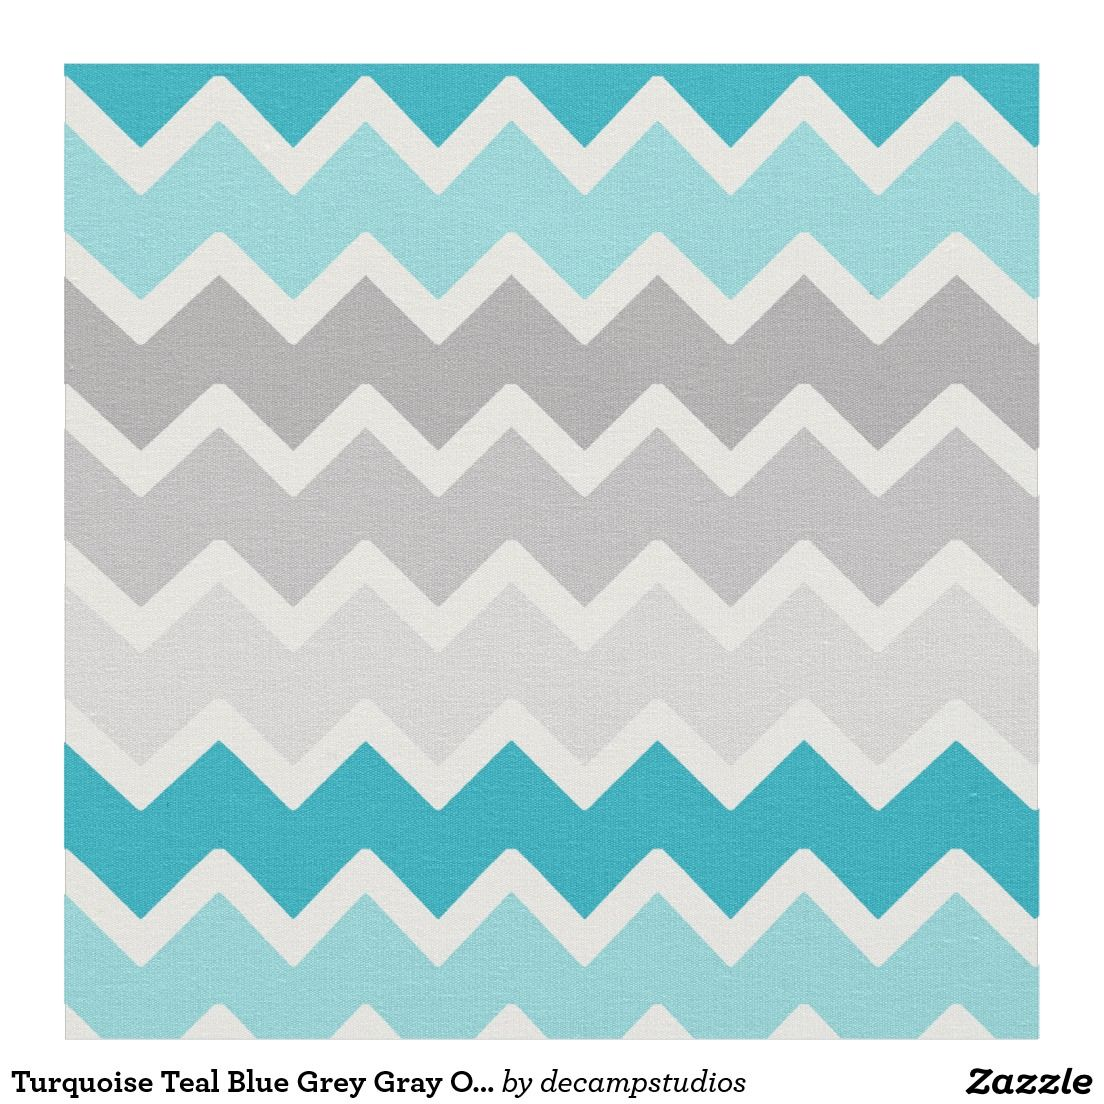 Turquoise Teal Blue Grey Gray Ombre Chevron Fabric Grey